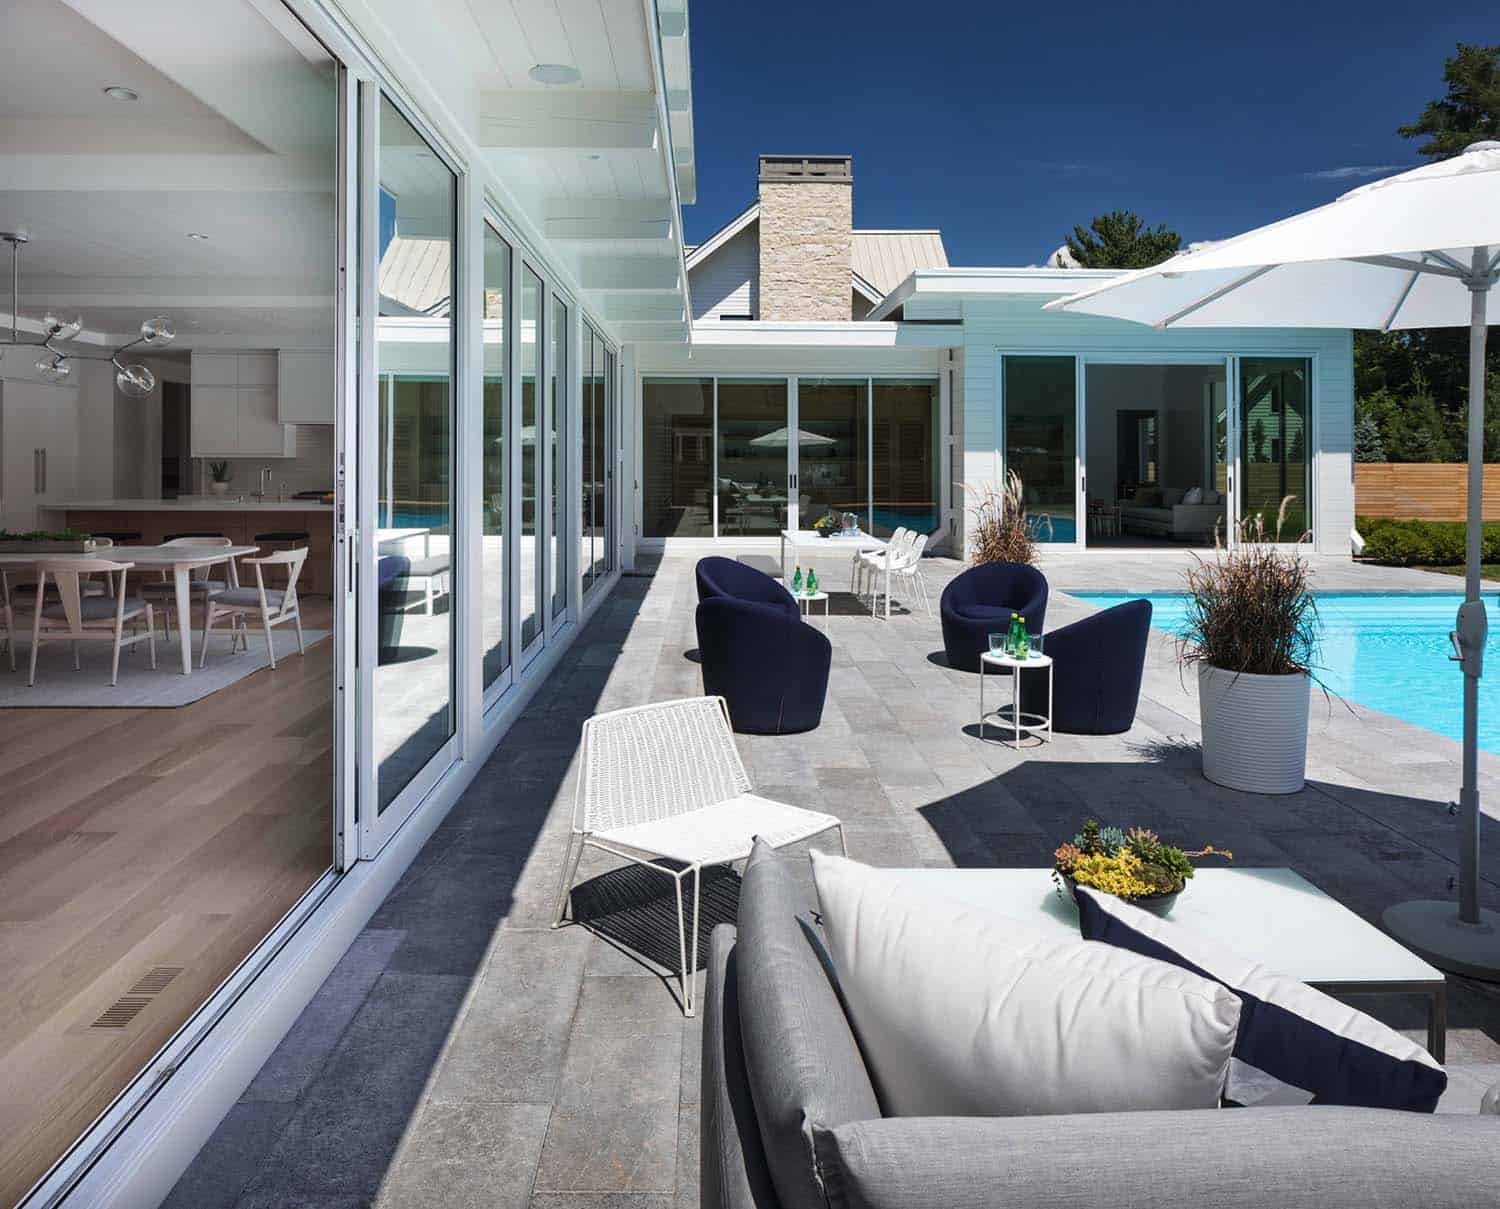 coastal-modern-home-patio